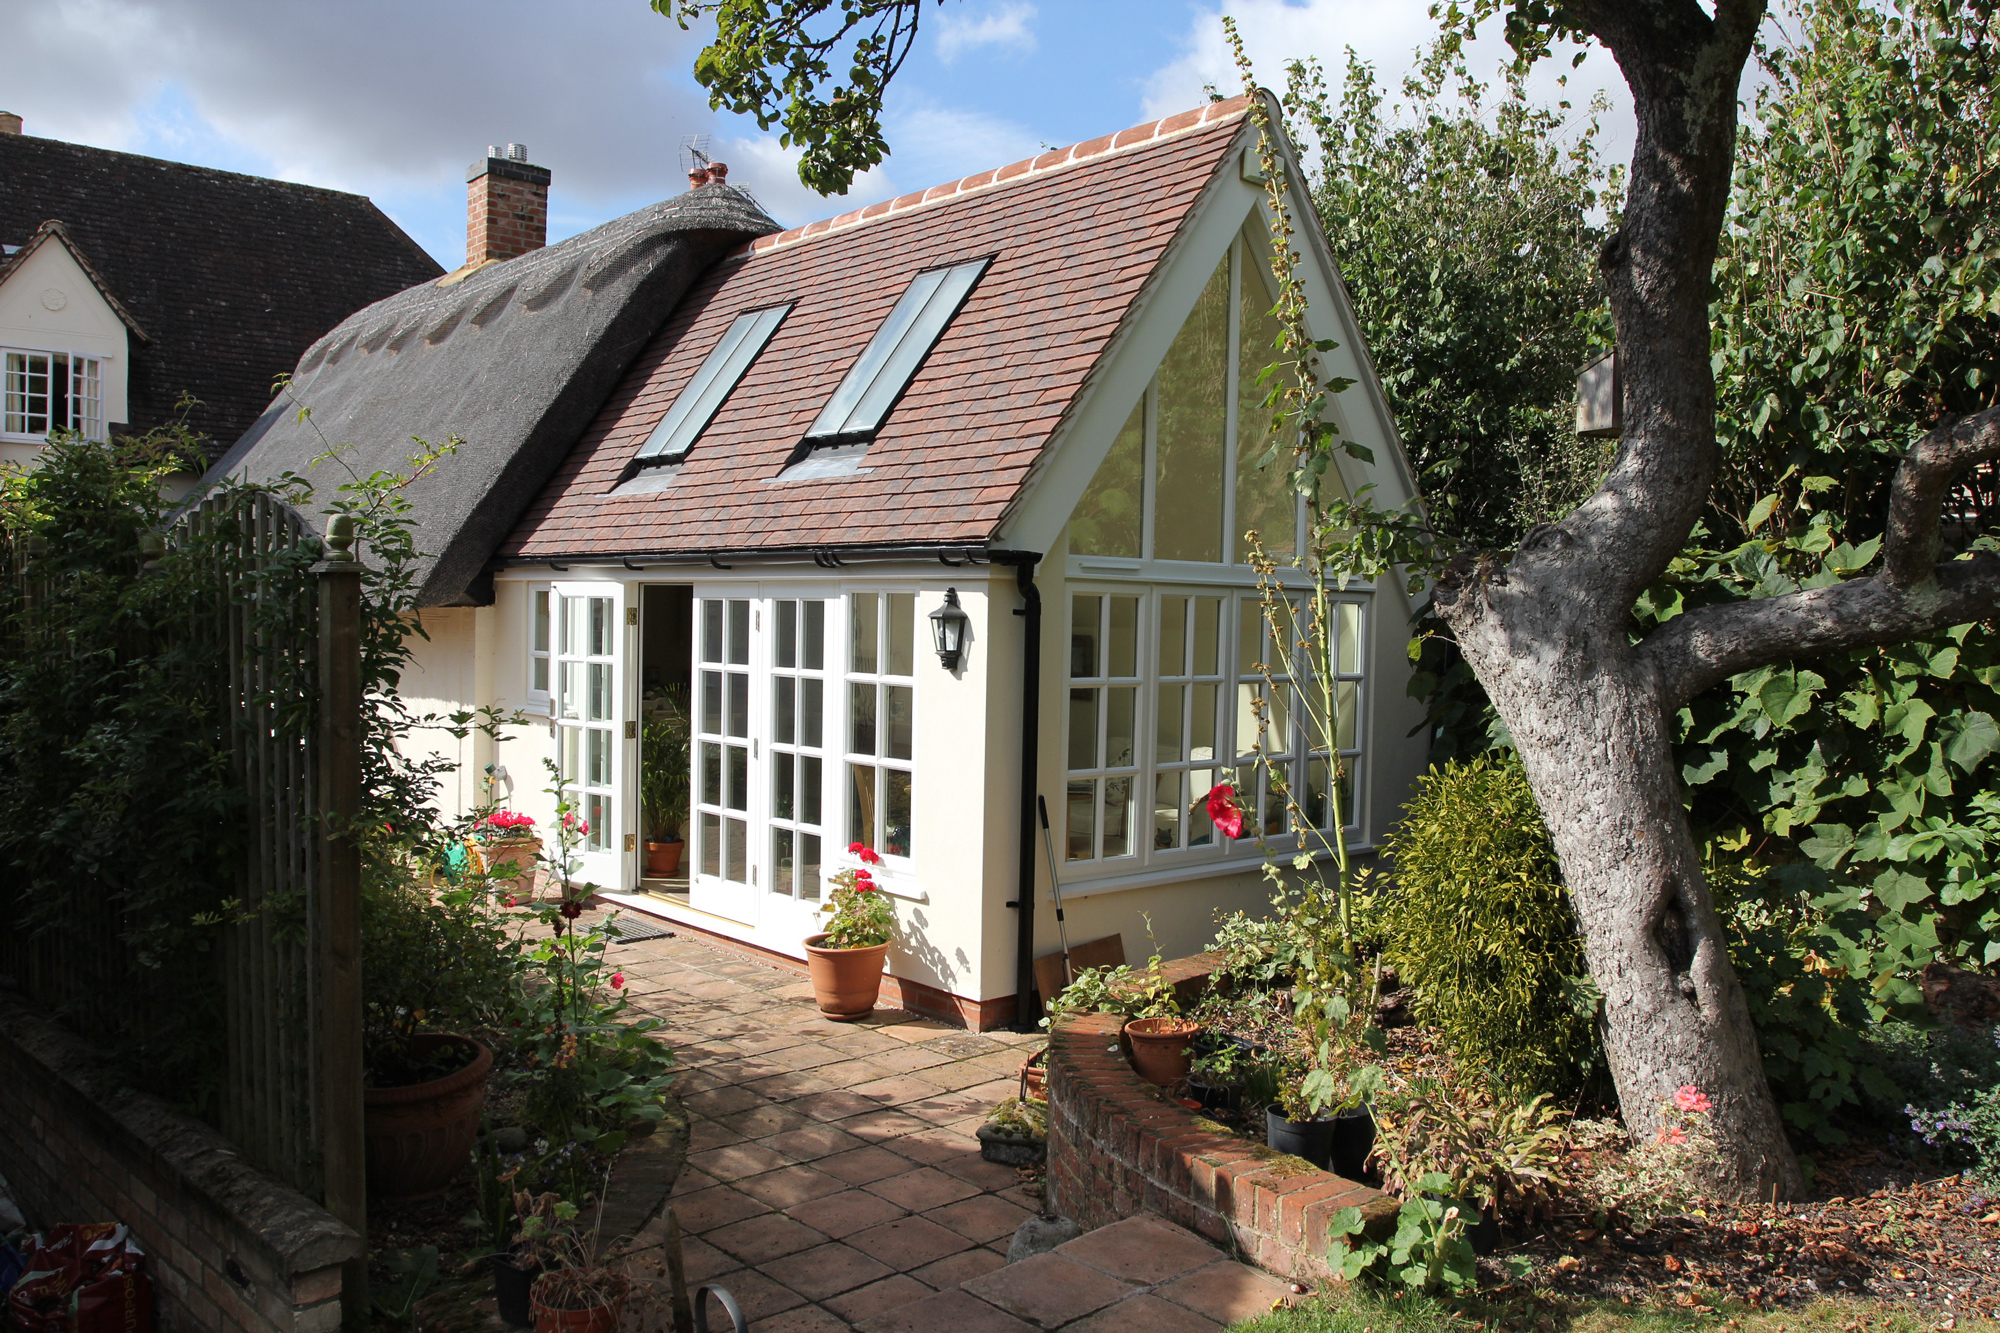 Kitchen extensions project 3 heritage orangeries for Garden room extensions